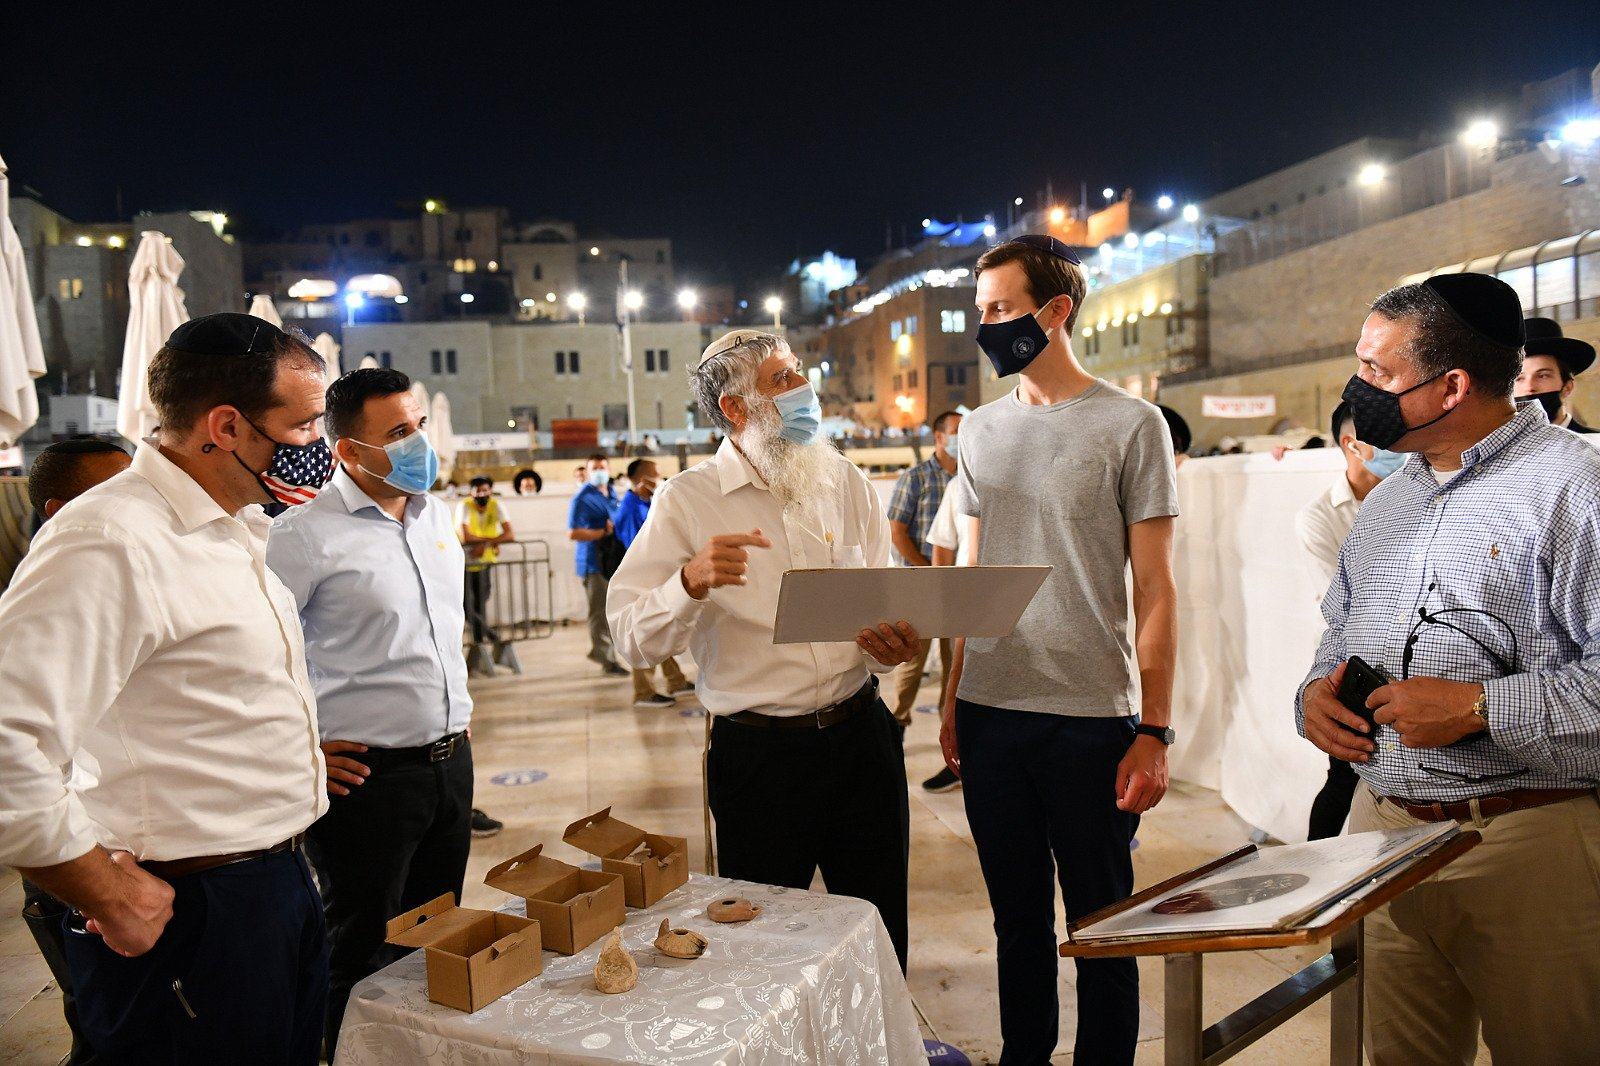 Delegation led by Jared Kushner, Senior Advisor to the President of the United States, visits the Western Wall, Western Wall Heritage Foundation